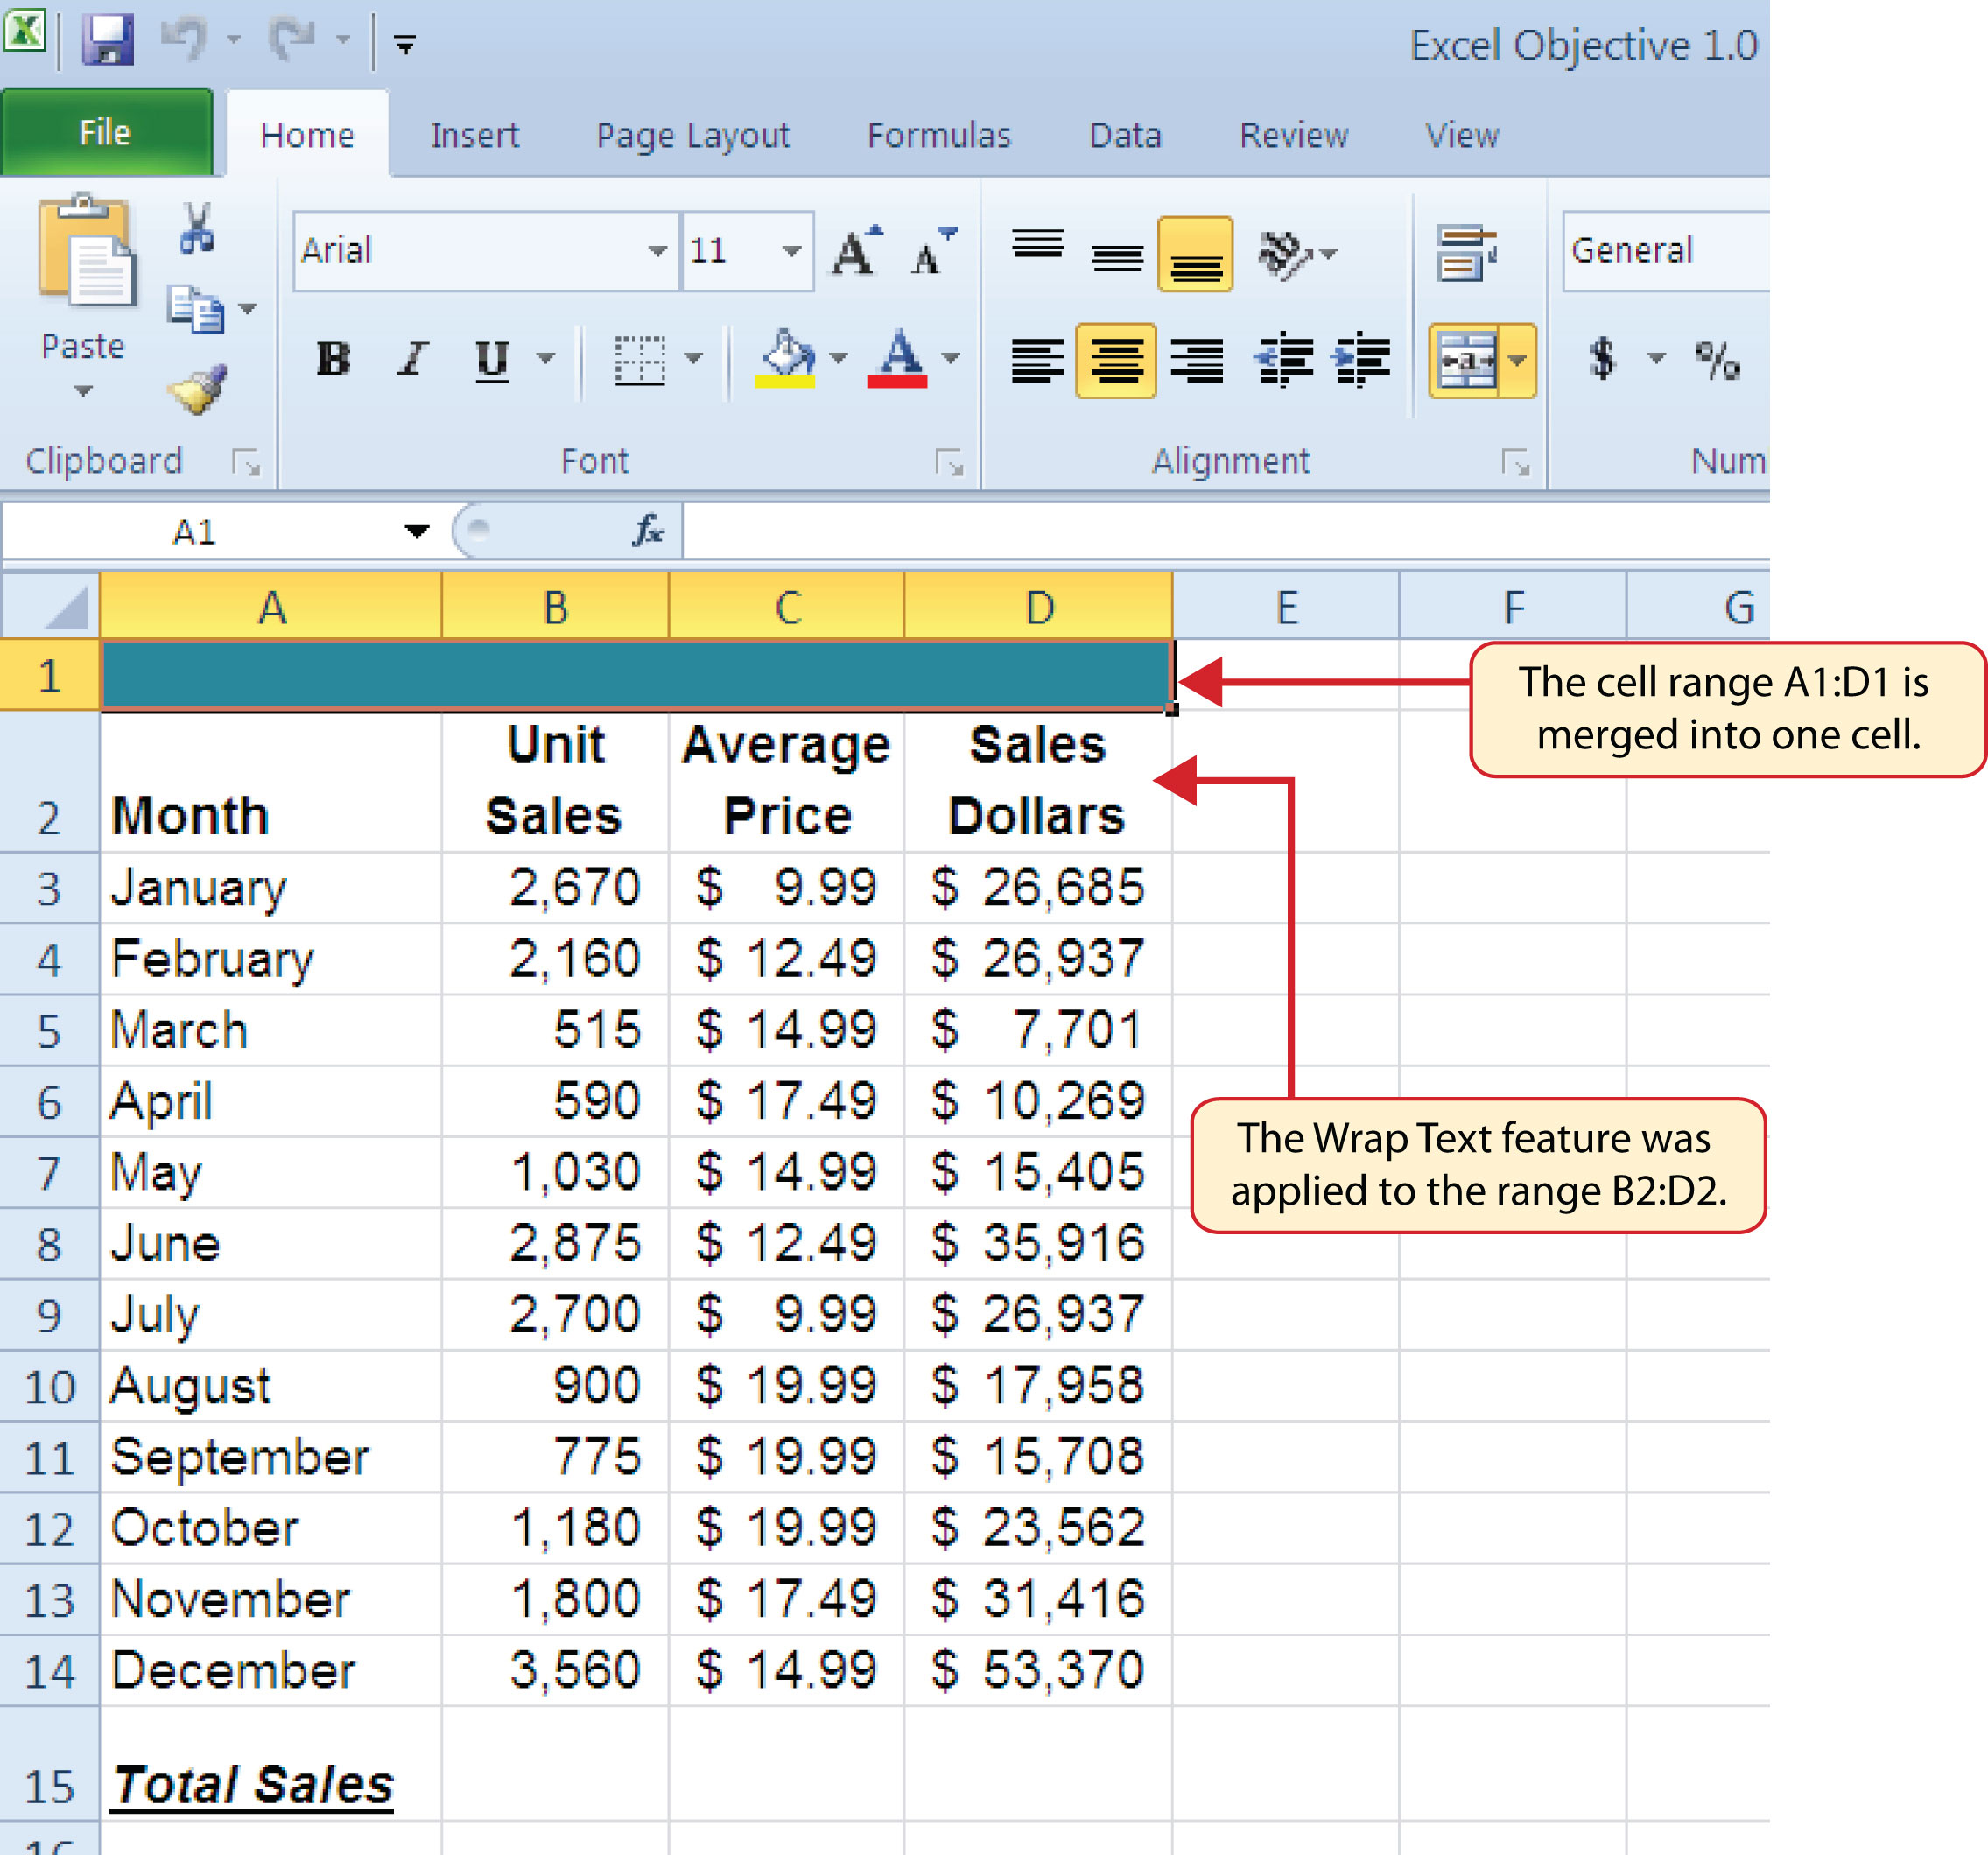 An Excel File That Contains One Or More Worksheets Delibertad – An Excel File That Contains One or More Worksheets